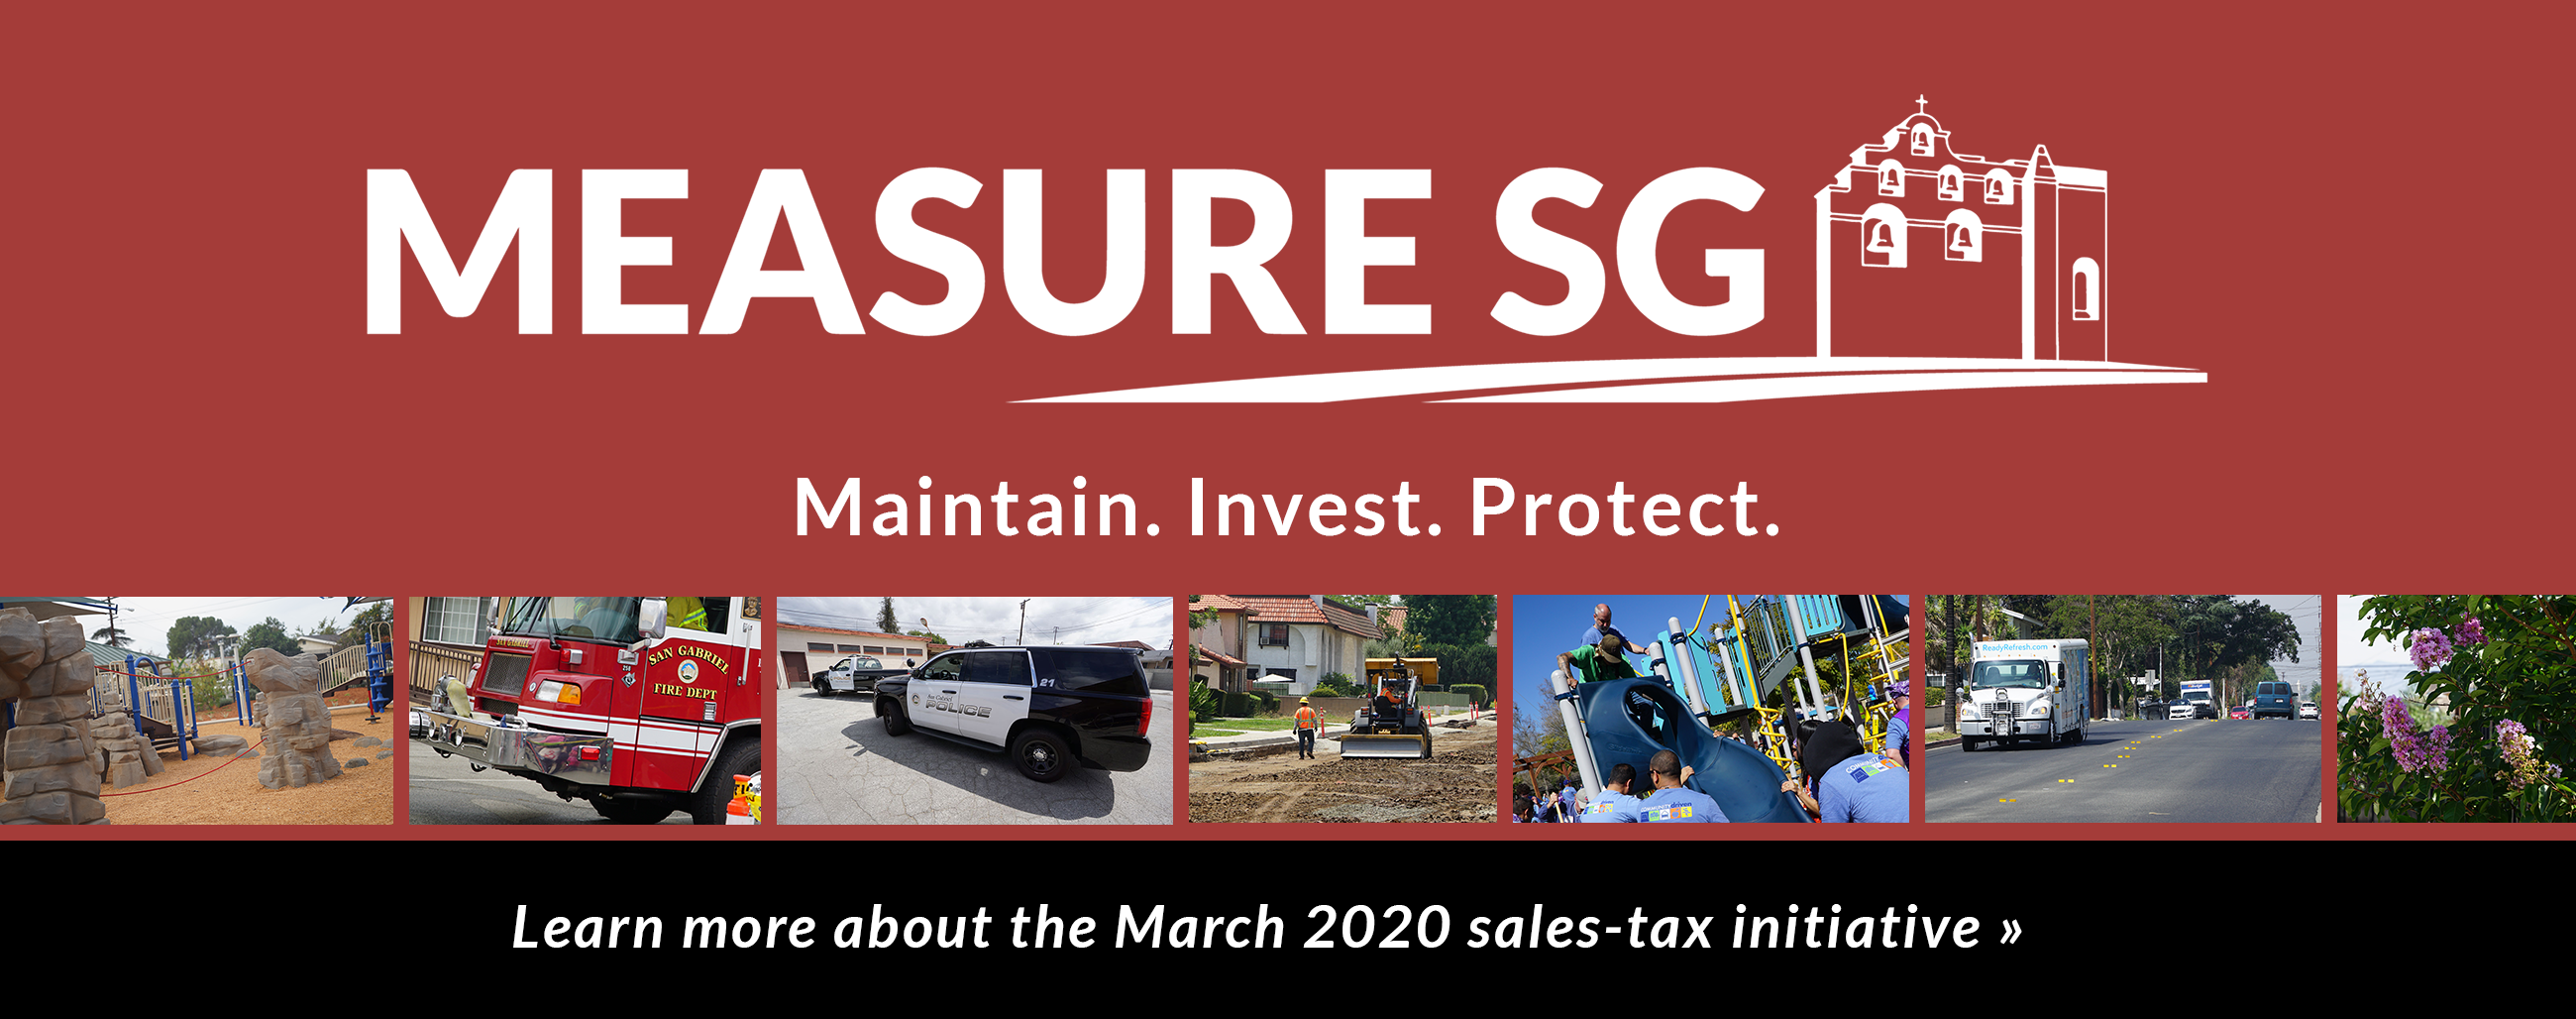 Measure SG - Invest. Maintain. Protect.